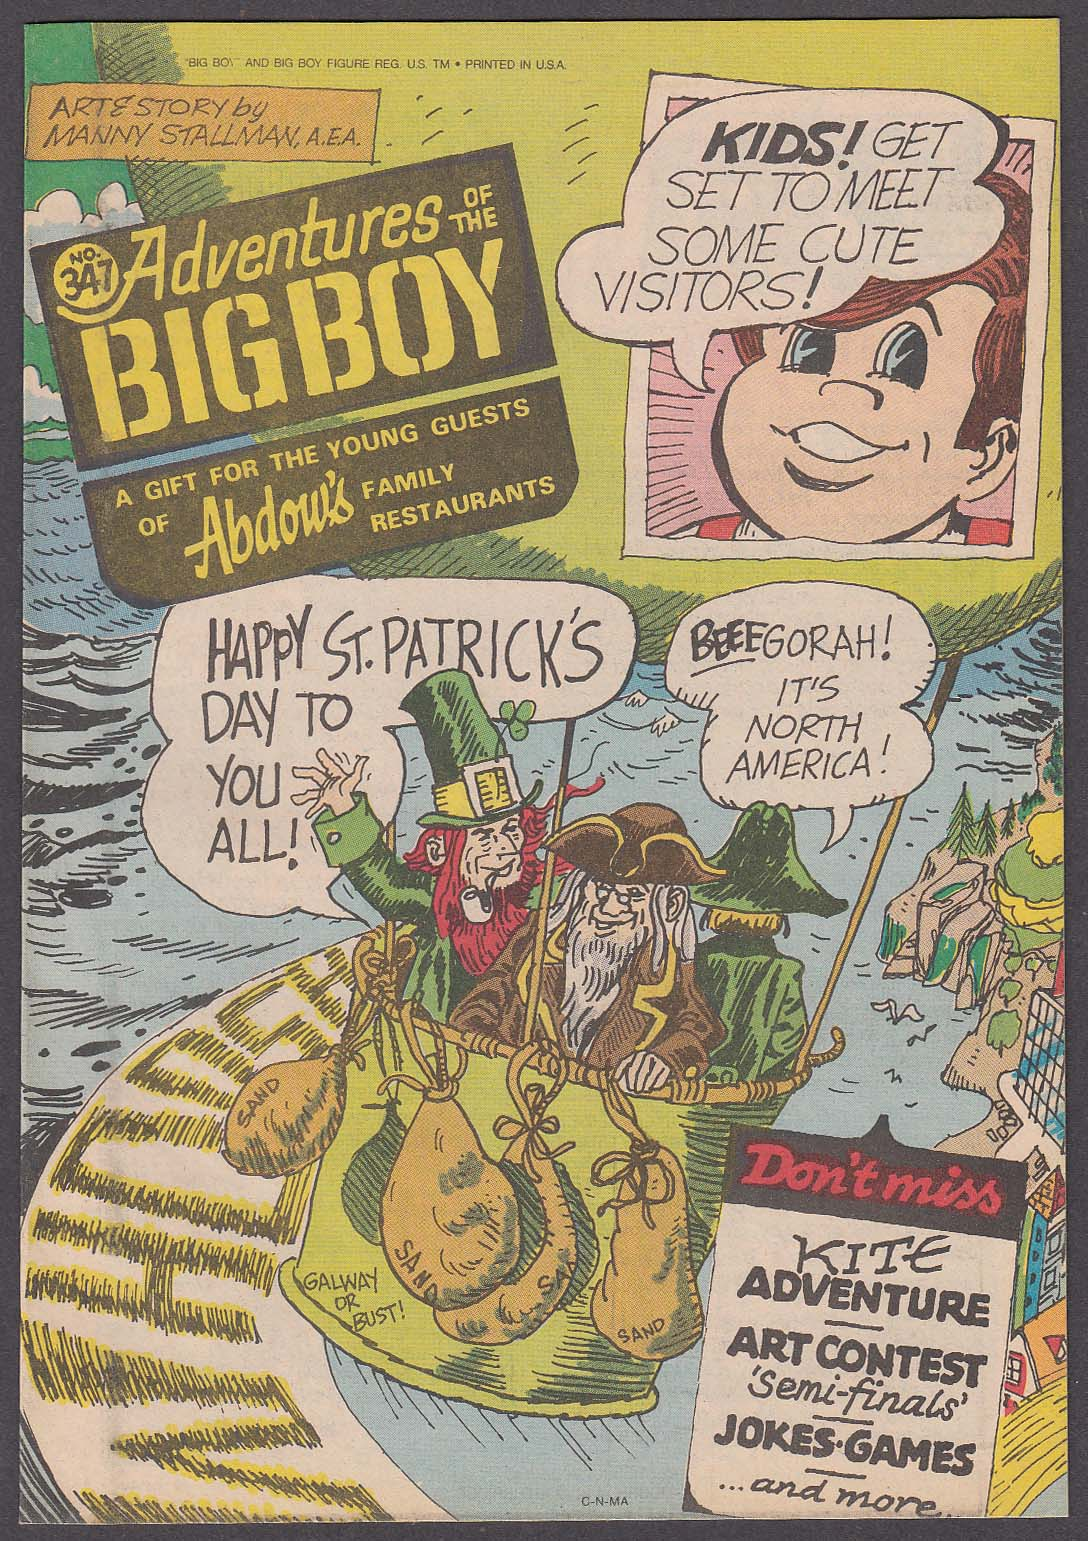 Adventures of the BIG BOY #347 comic book Abdow's Family Restaurants 1986